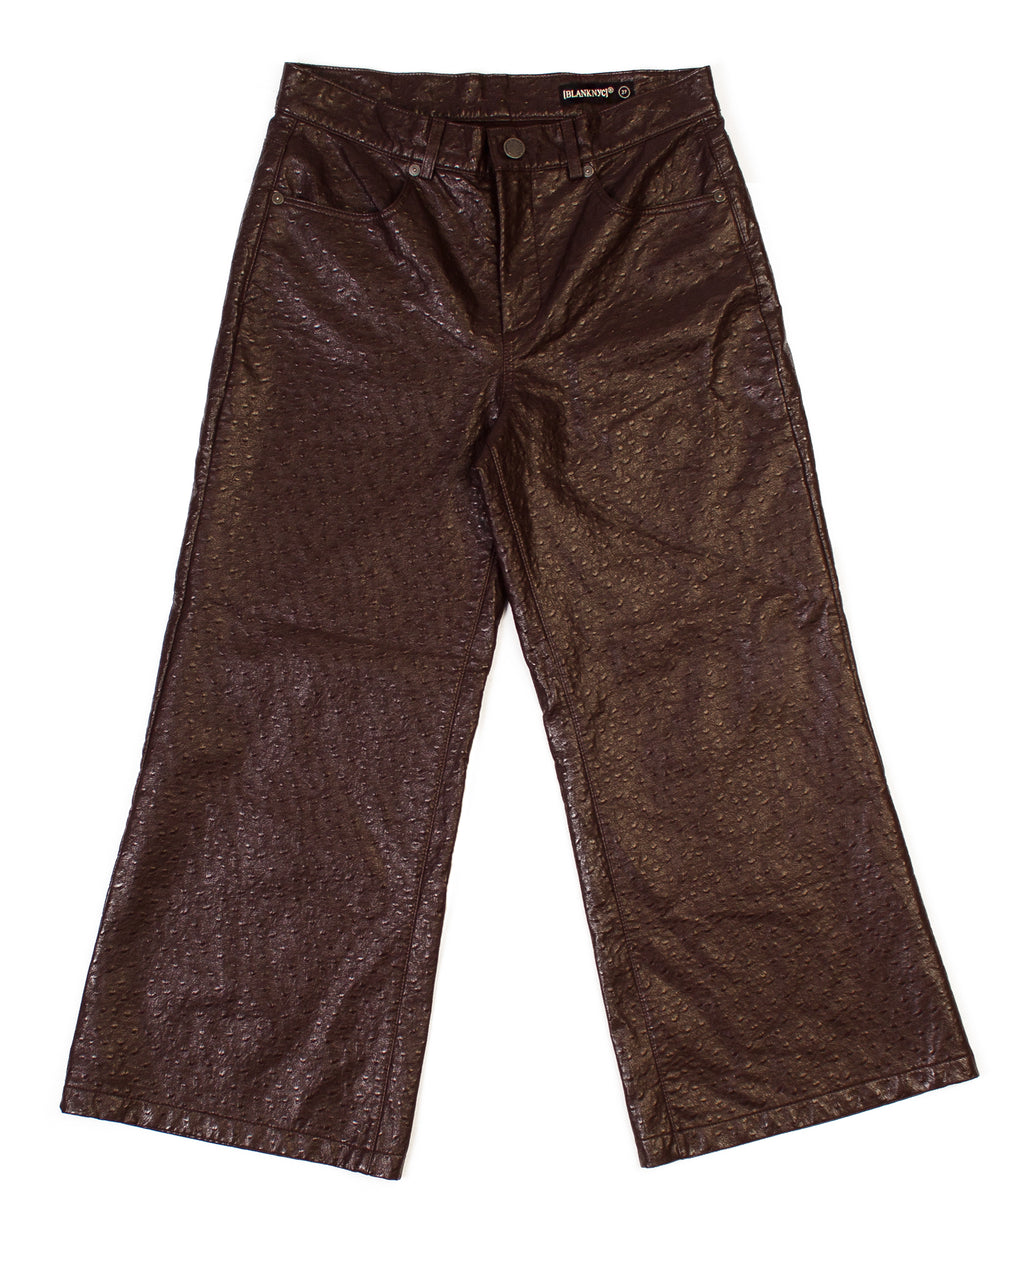 MAROON FAUX OSTRICH LEATHER CULOTTES